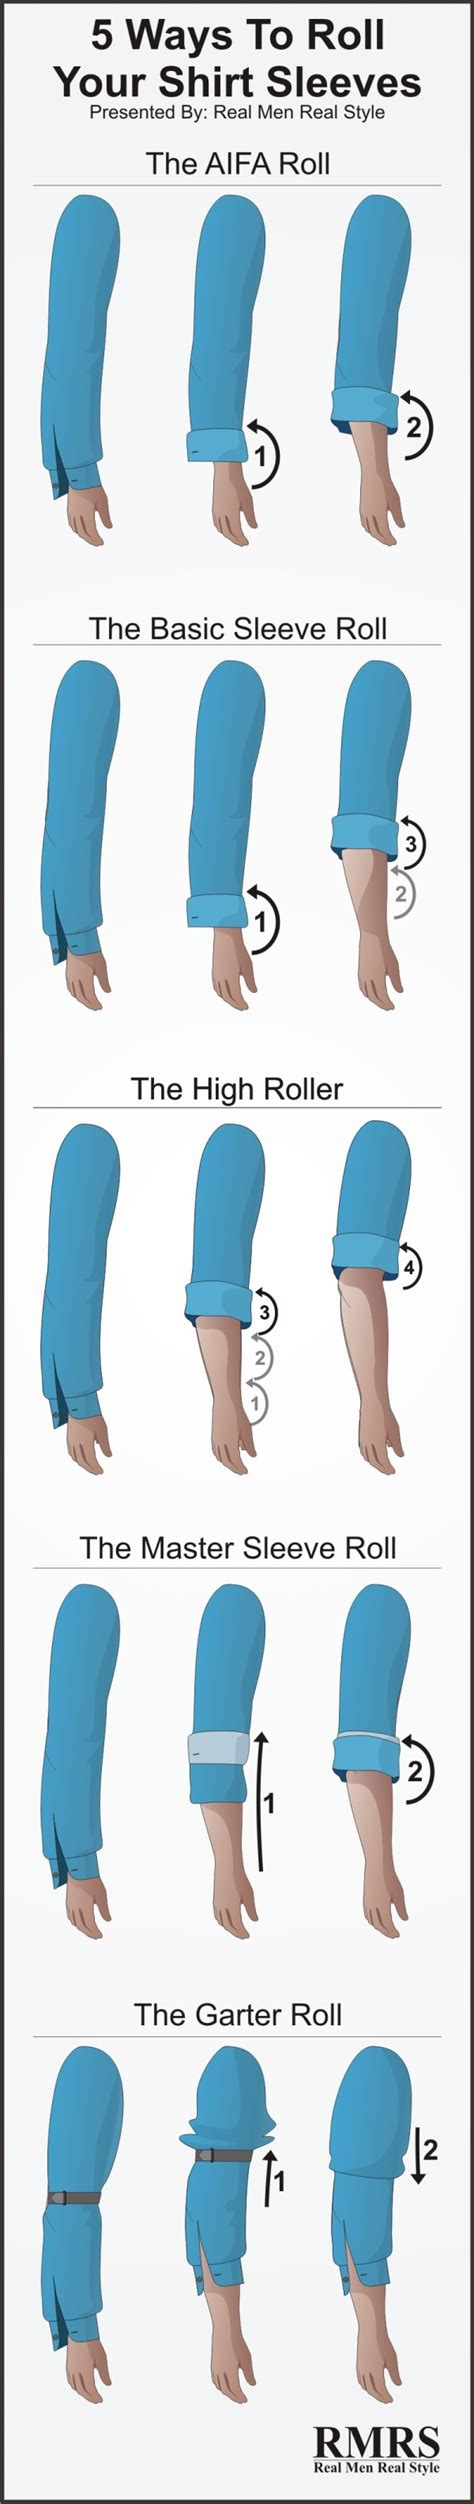 how to my to roll how to roll shirt sleeves 5 ways to fold your shirt sleeves sleeve rolling infographic